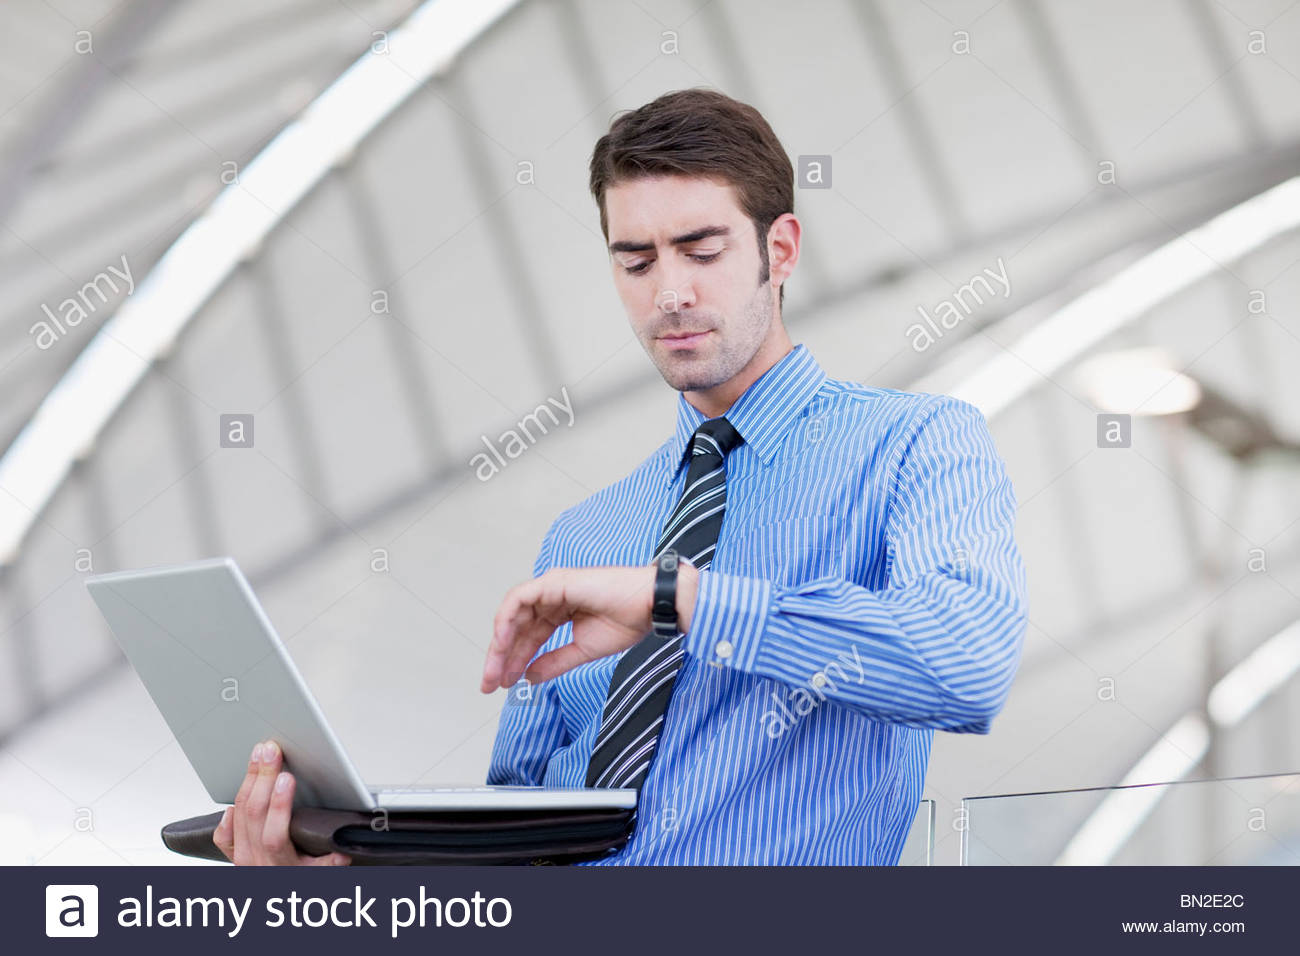 Businessman with laptop checking the time - Stock Image